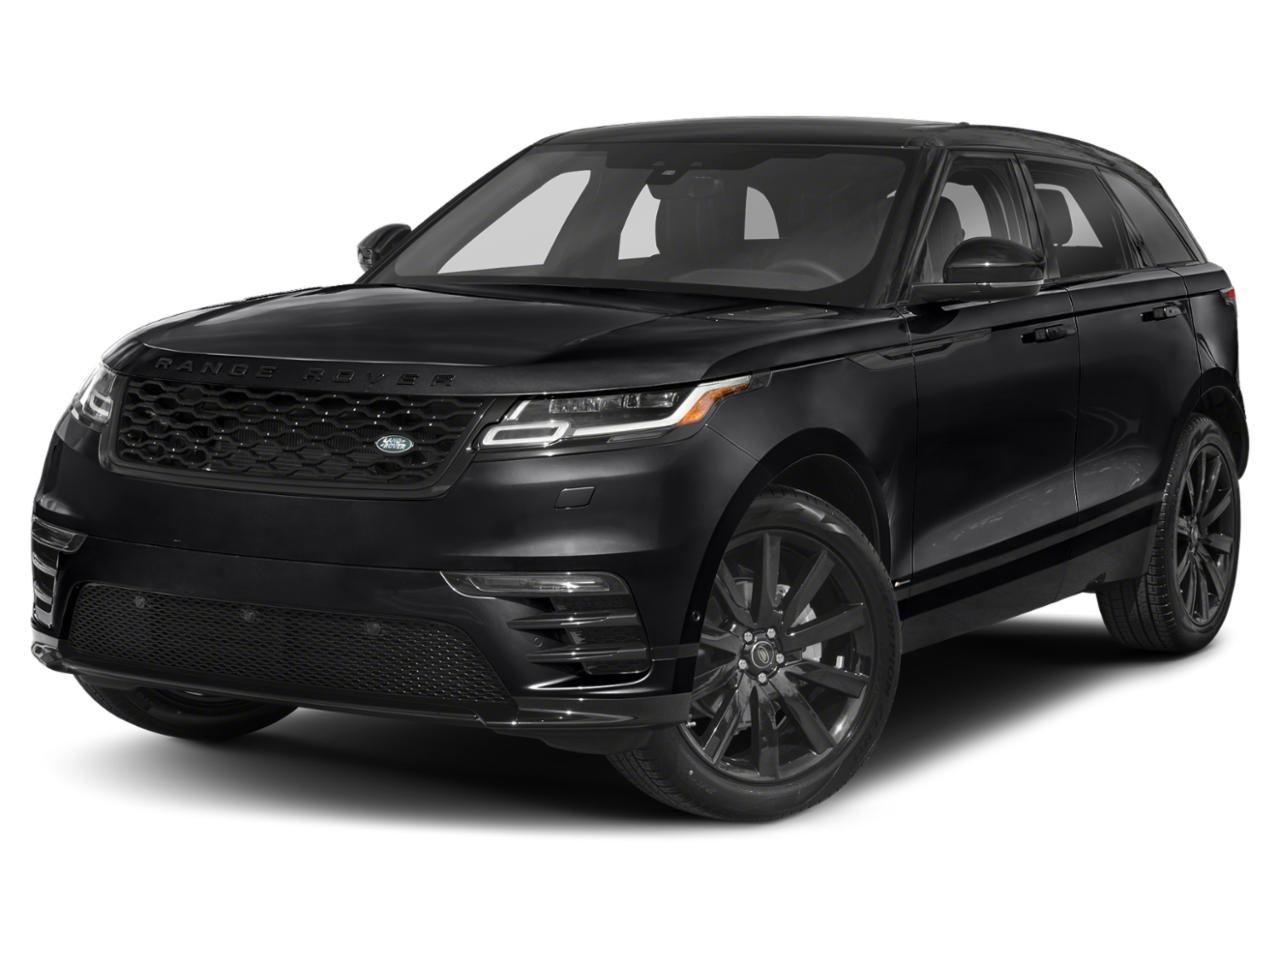 2019 Land Rover Range Rover Velar Vehicle Photo in Anaheim, CA 92806